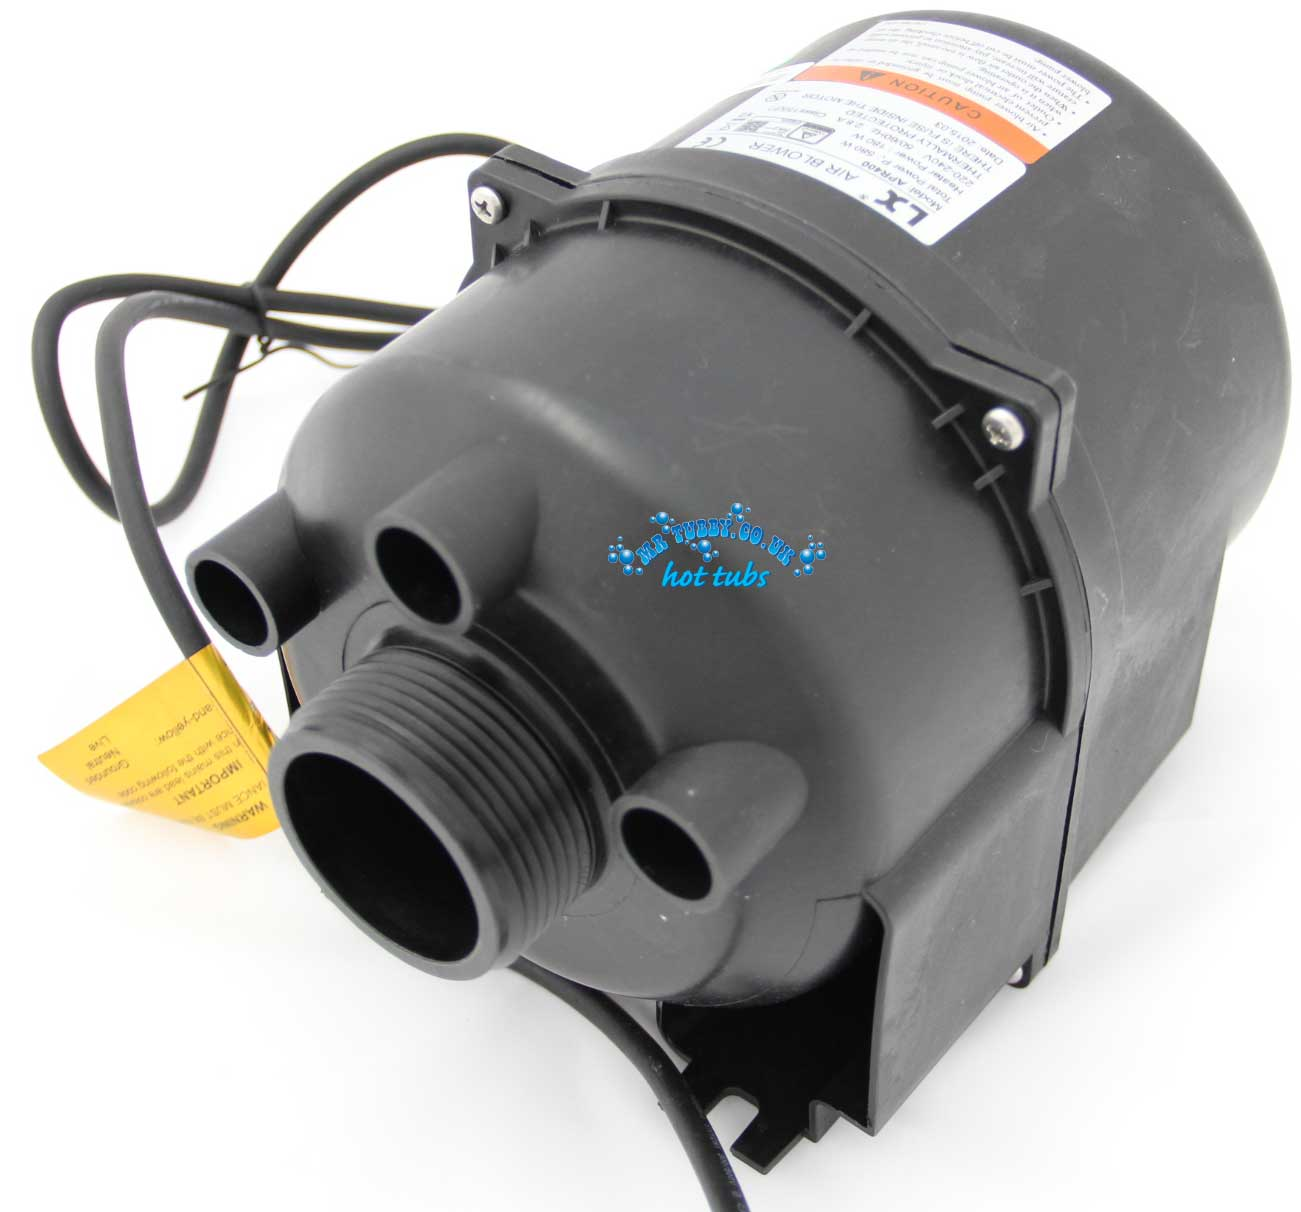 Whirlpool lx apr400 heated air blower 400w blower 180w for Hot water heater blower motor